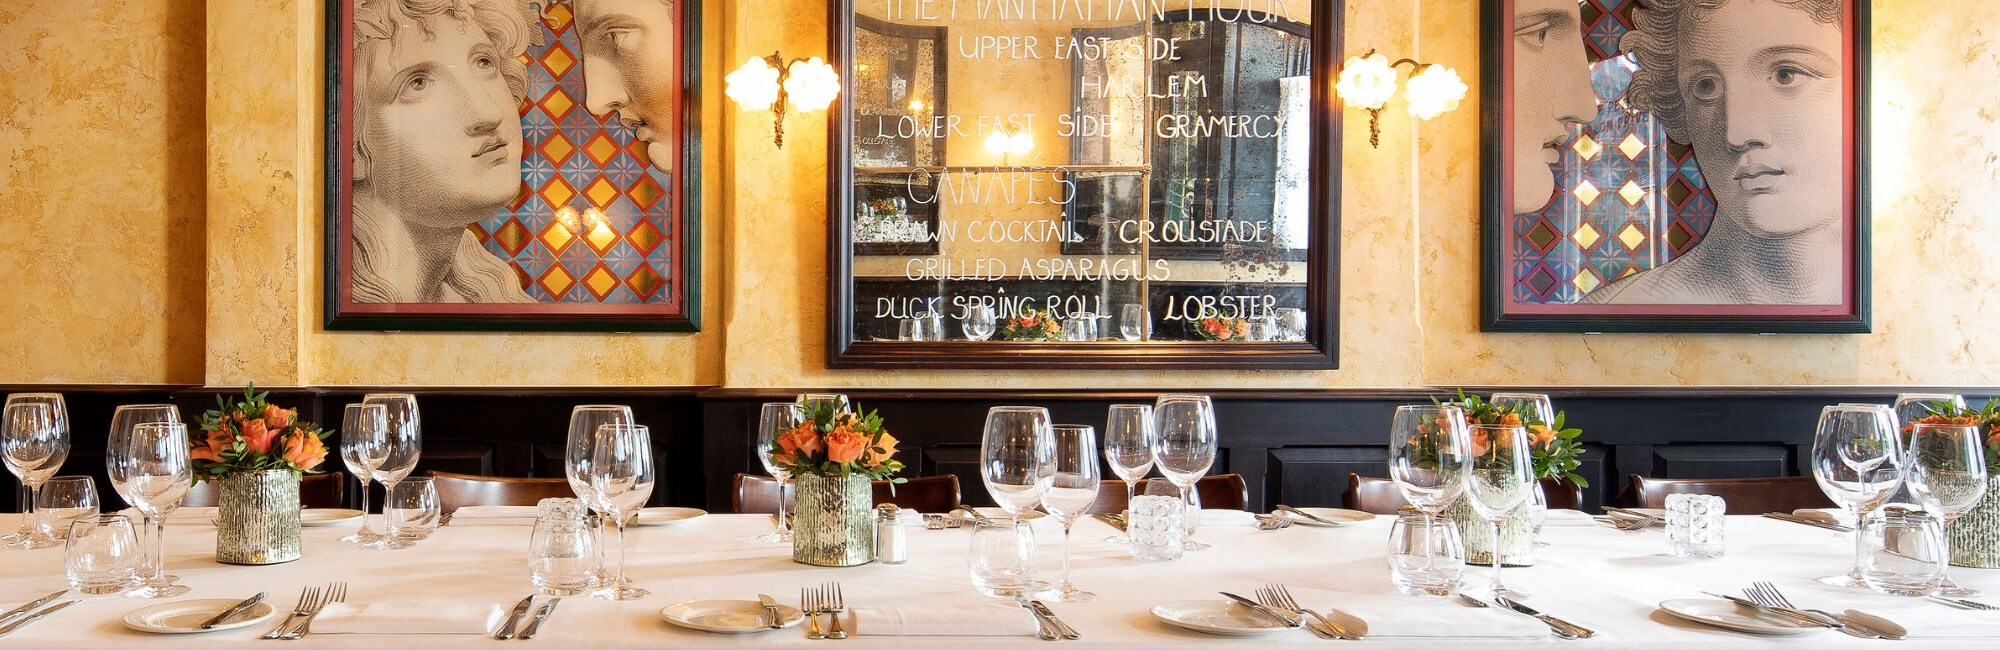 Le Petit Salon Privé is a small private dining space in Covent Garden